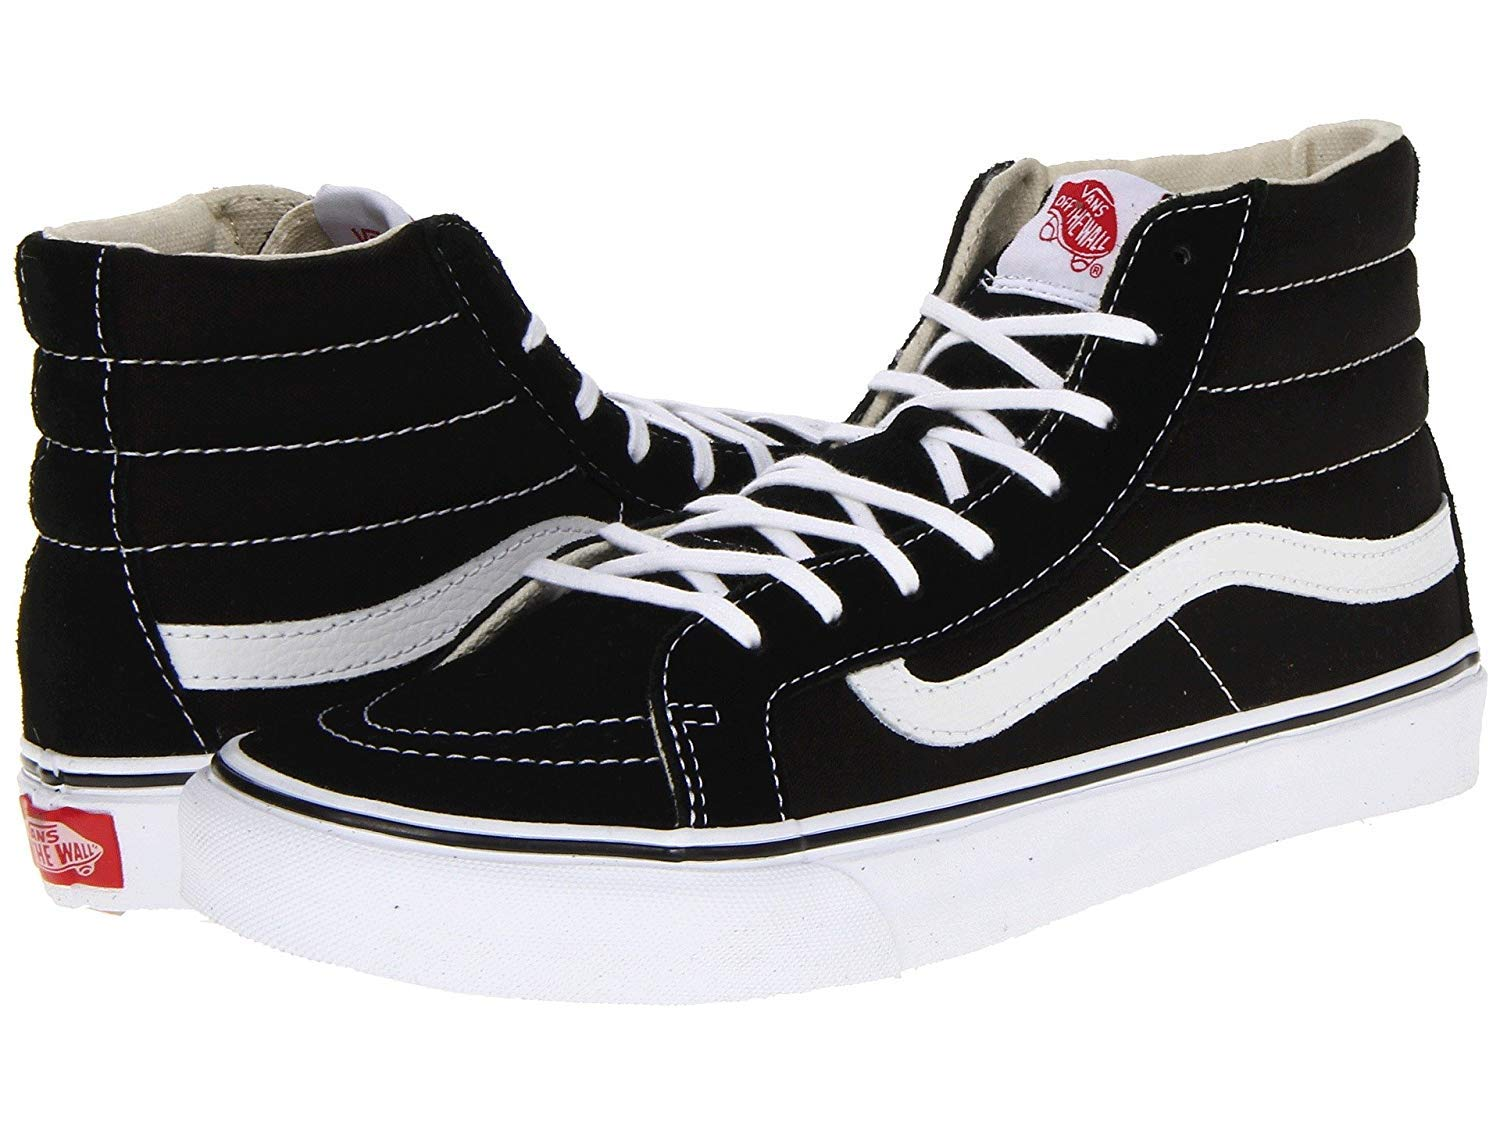 78b7cab095f33 Galleon - Vans Unisex Sk8-Hi Slim Skate Shoe Black/White 5 D(M) US